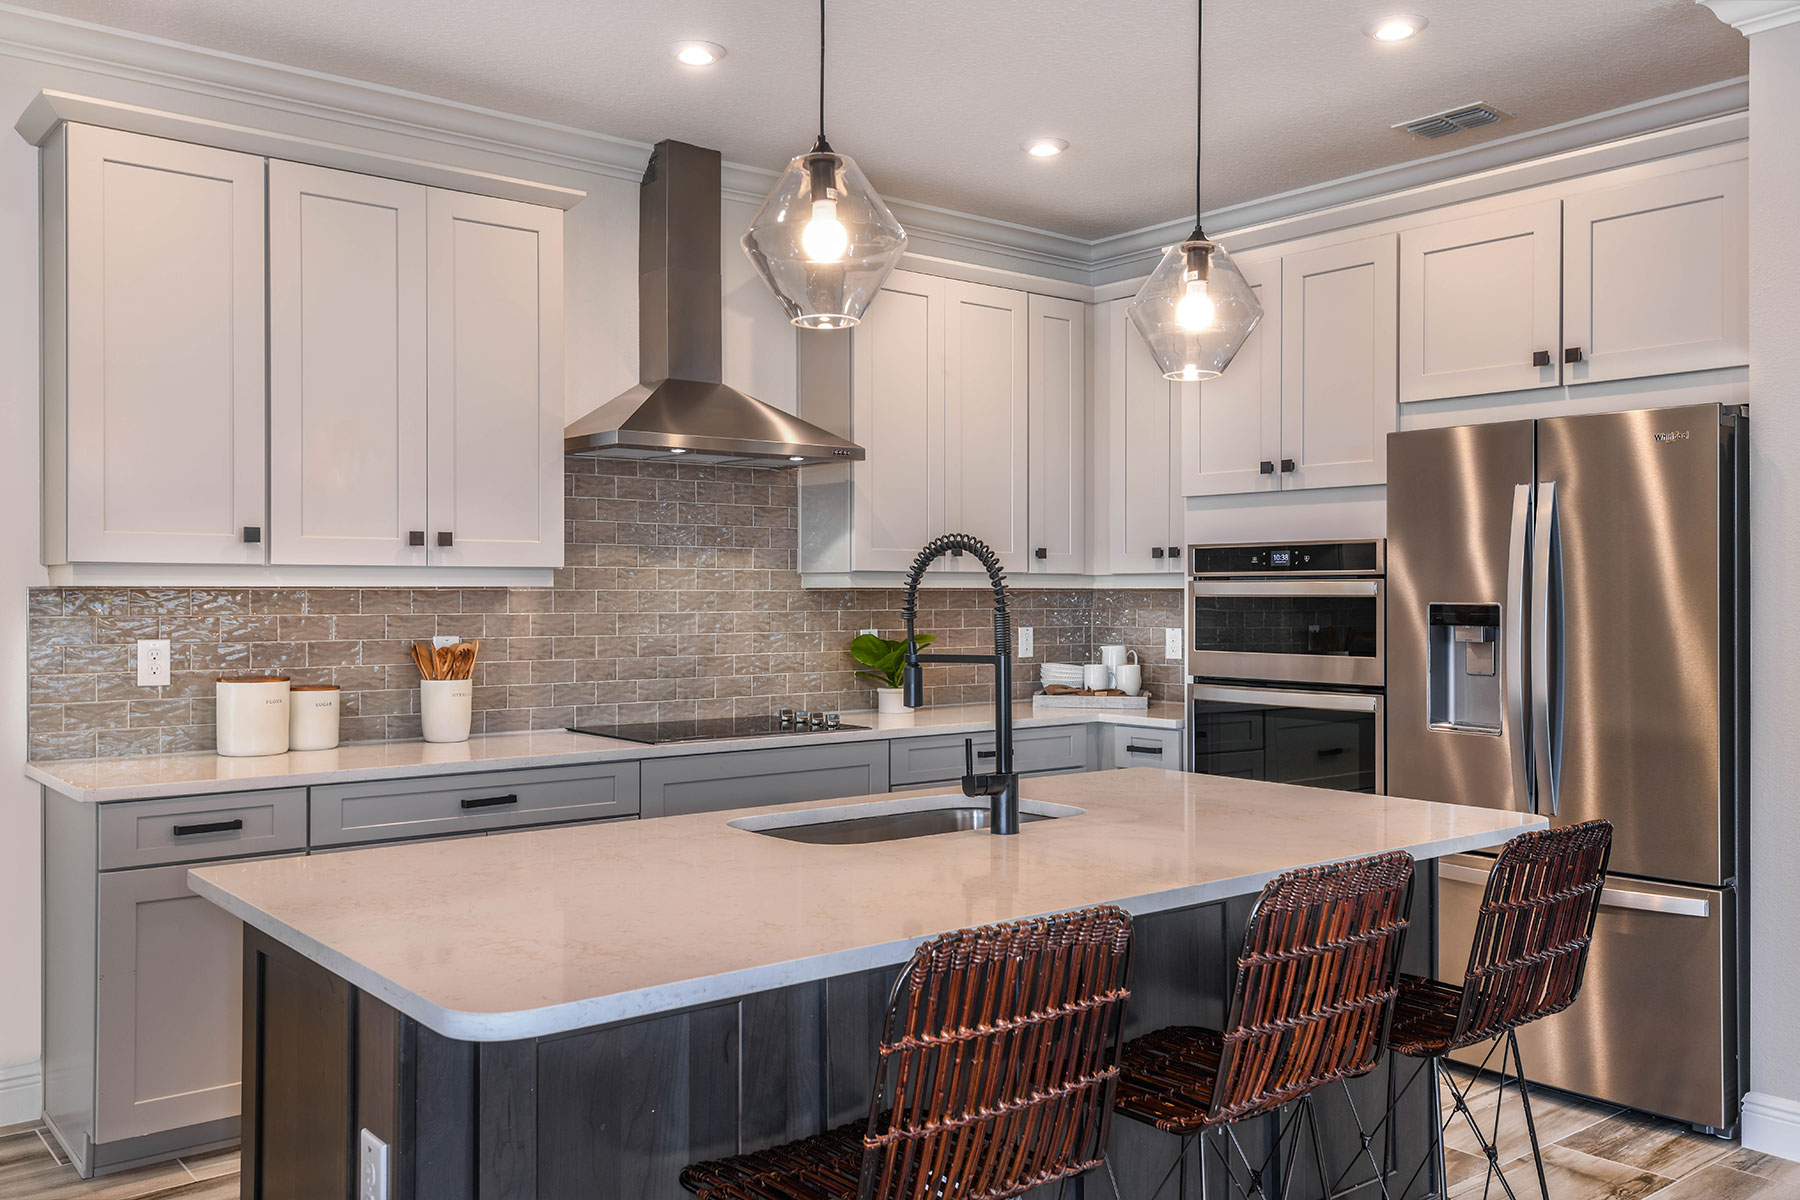 Parkview at Long Lake Ranch Kitchen in Lutz Florida by Mattamy Homes